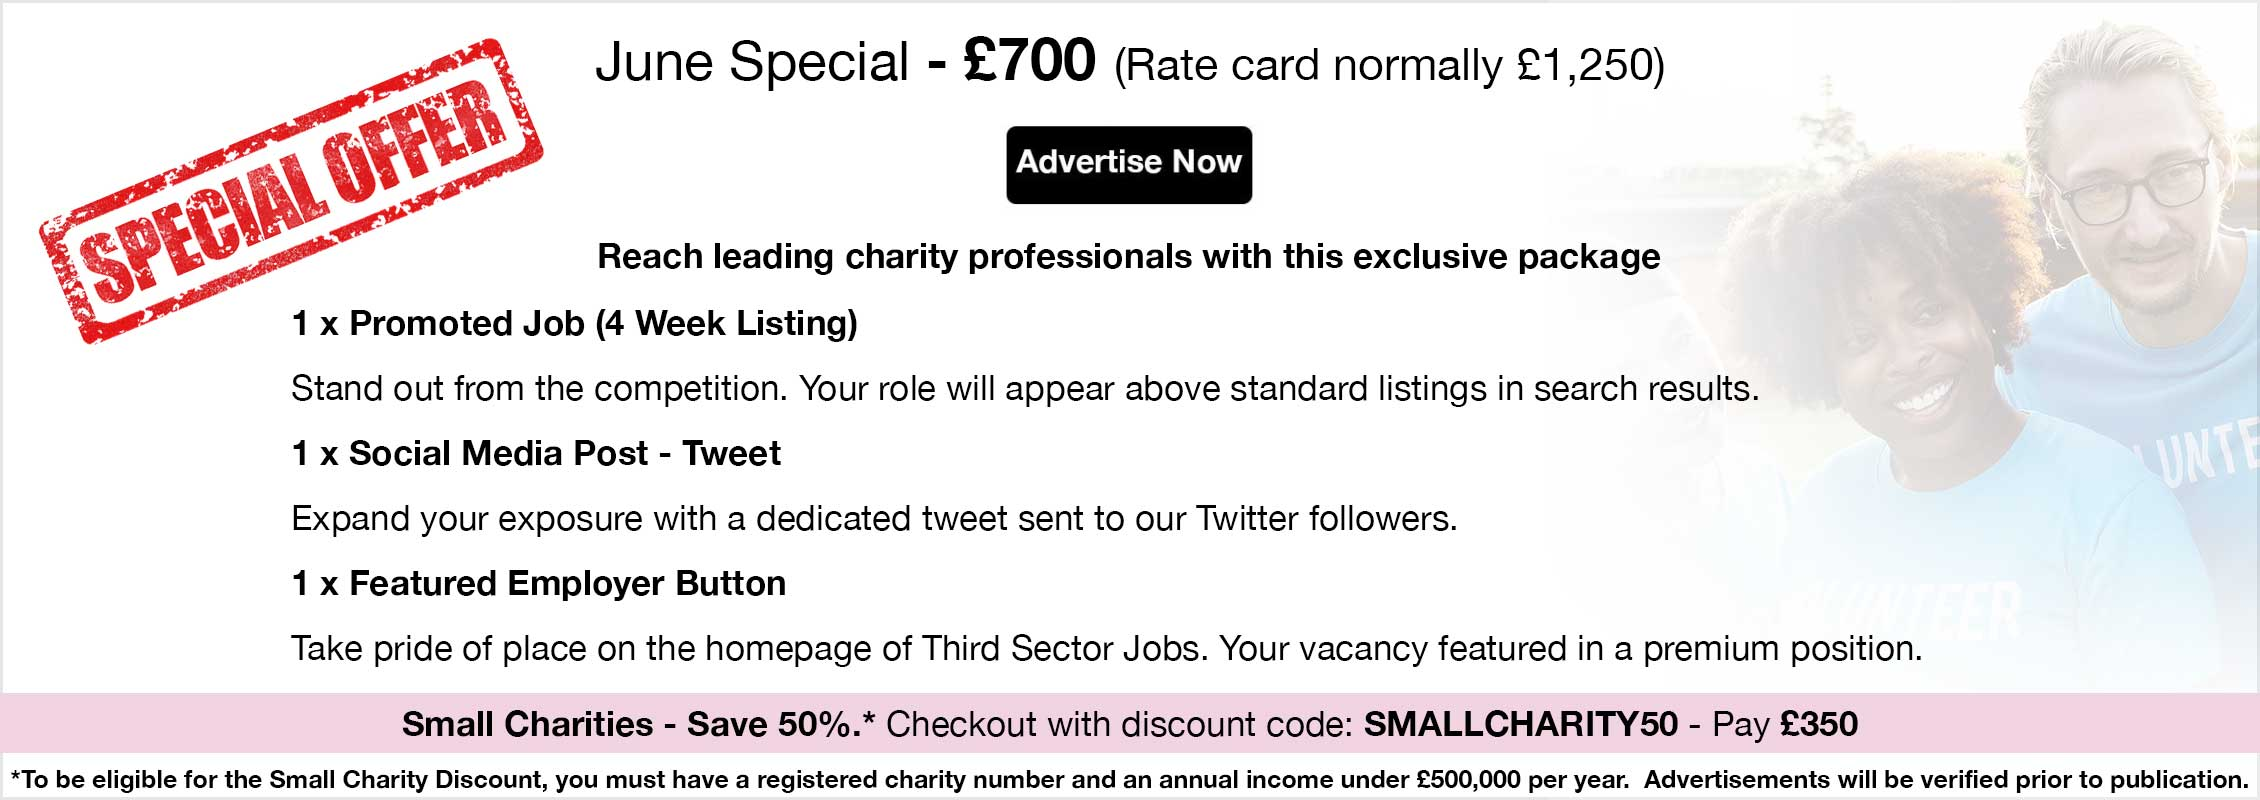 Special Offer. June Special - £700 (Rate card normally £1,250). Advertise Now. Reach leading charity professionals with this exclusive package. 1 x Promoted Job (4 Week Listing). Stand out from the competition. Your role will appear above standard listings in search results. 1 x Social Media Post - Tweet. Expand your exposure with a dedicated tweet sent to our Twitter followers. 1 x Featured Employer Button. Take pride of place on the homepage of Third Sector Jobs. Your vacancy featured in a premium position.